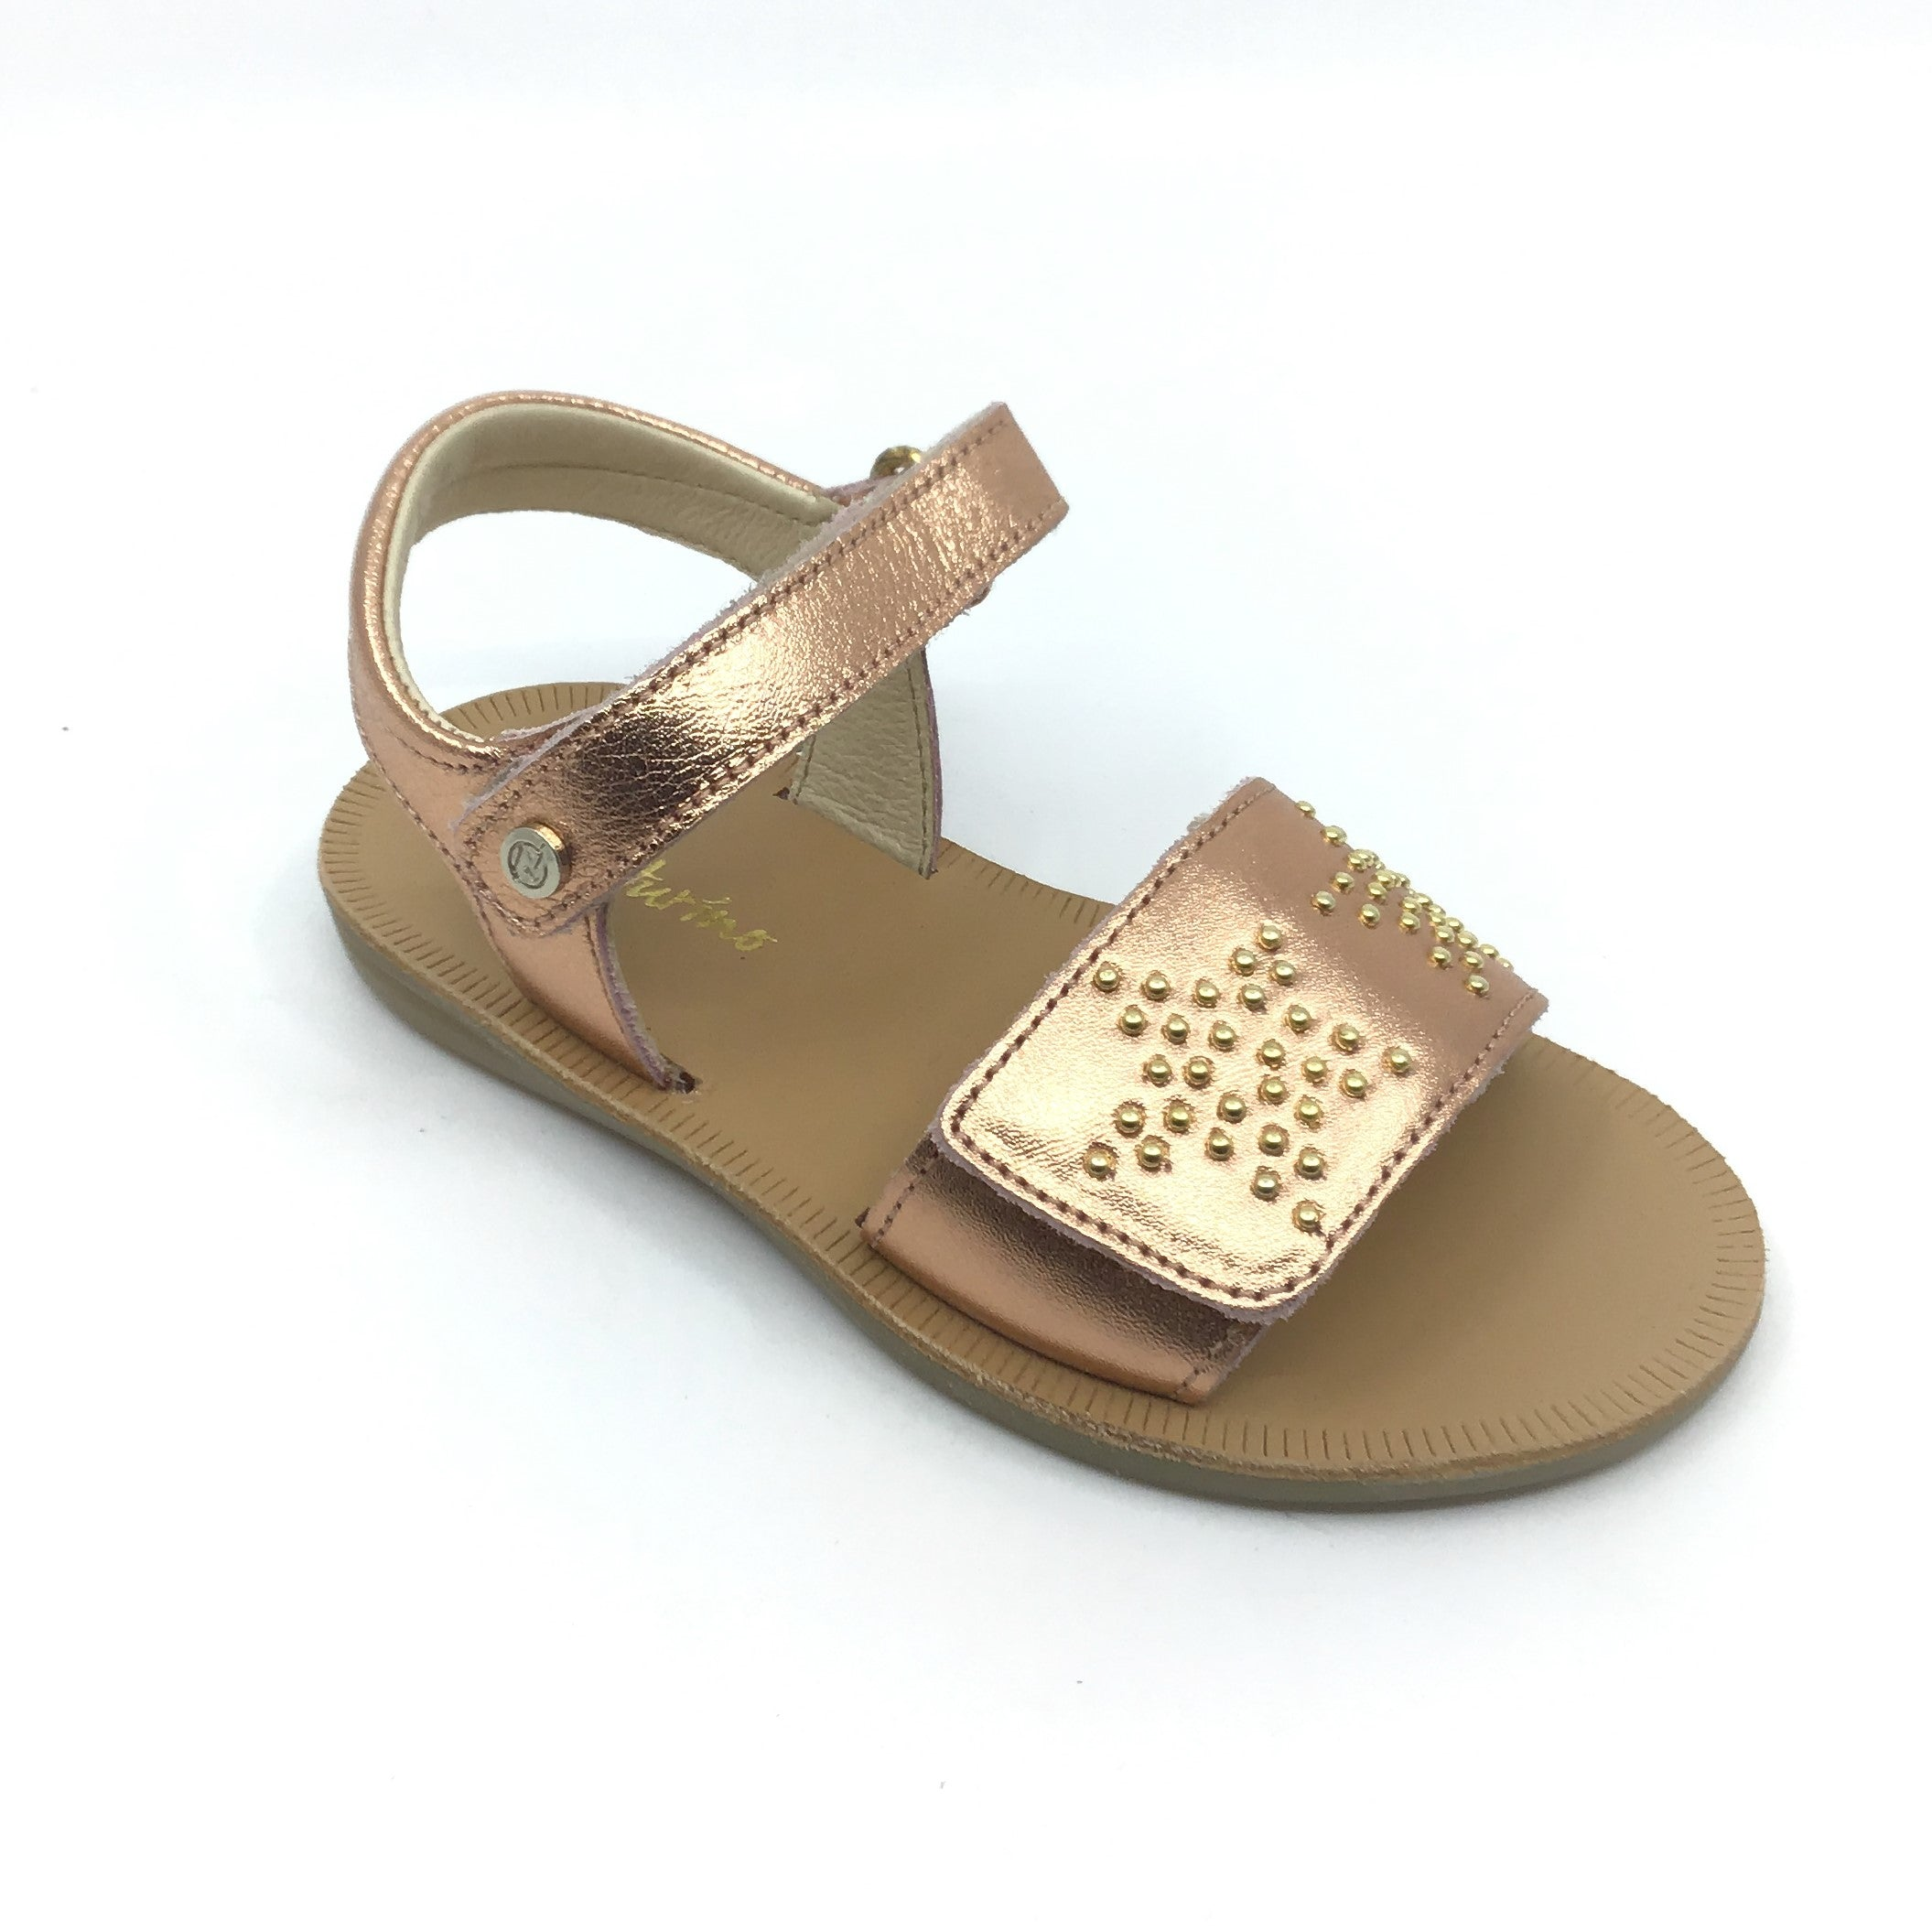 Naturino Rose Gold Sandal with Studs